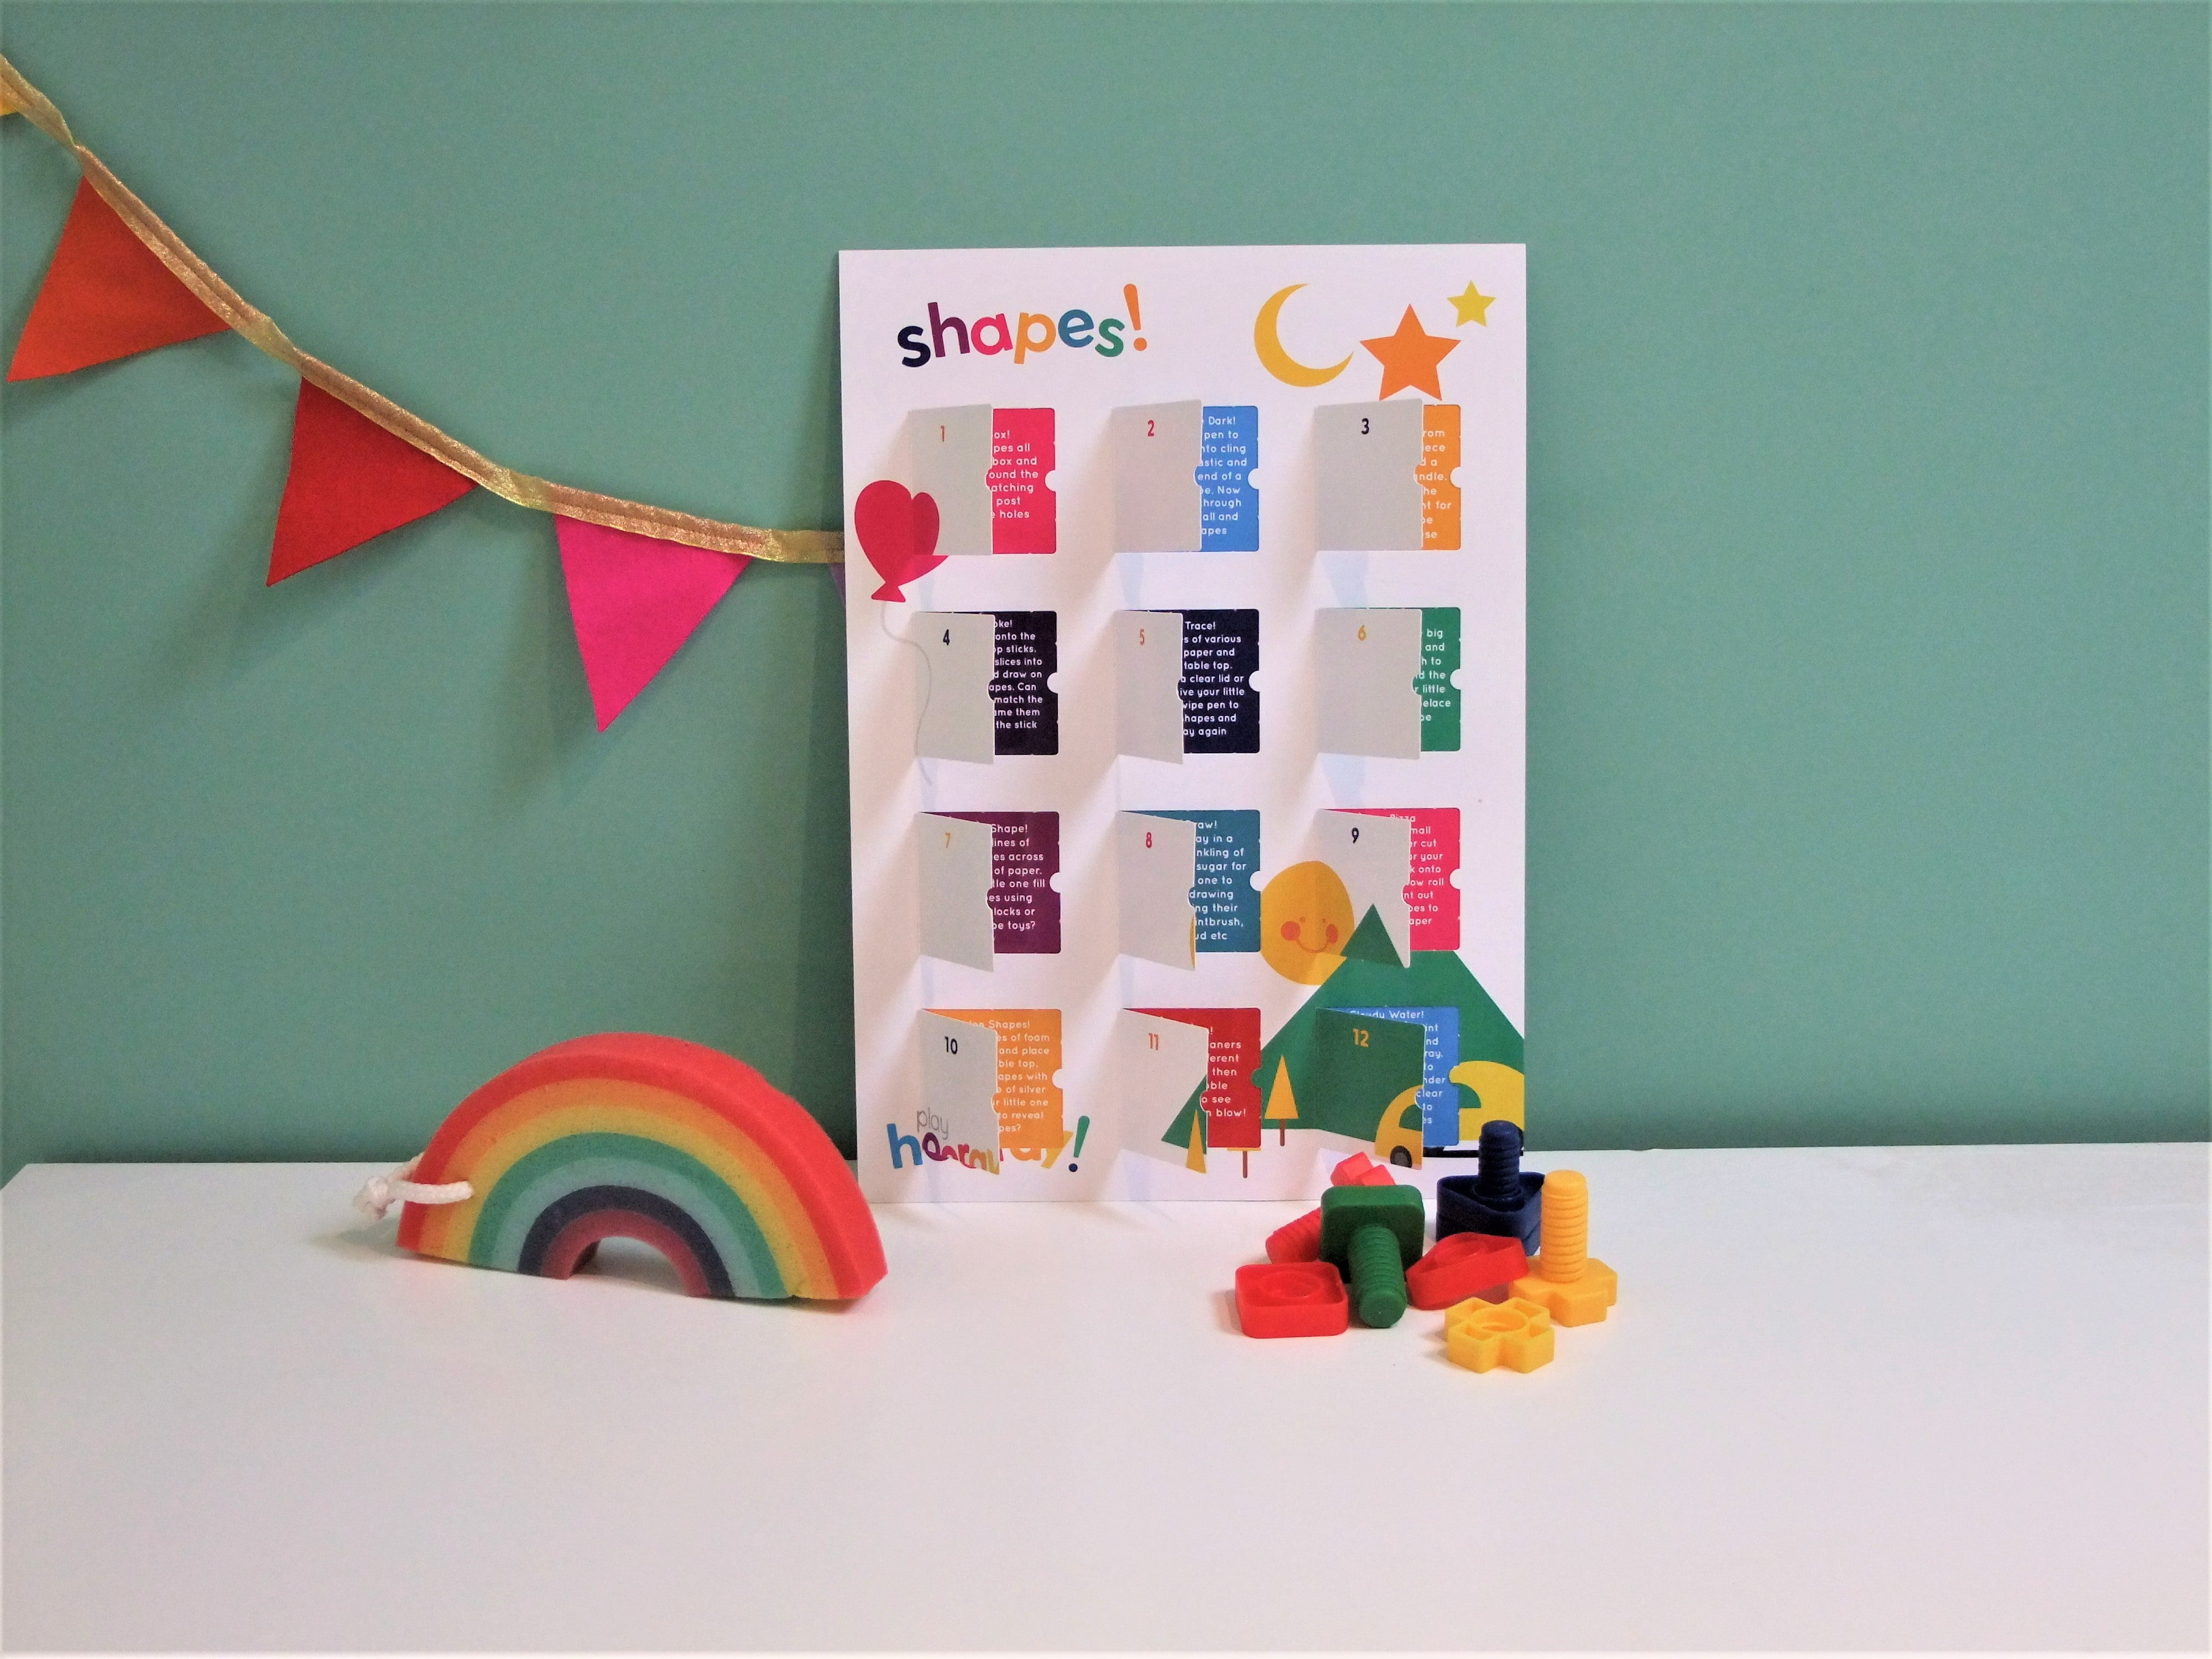 playCALENDAR: Shapes (A3) - playHOORAY!